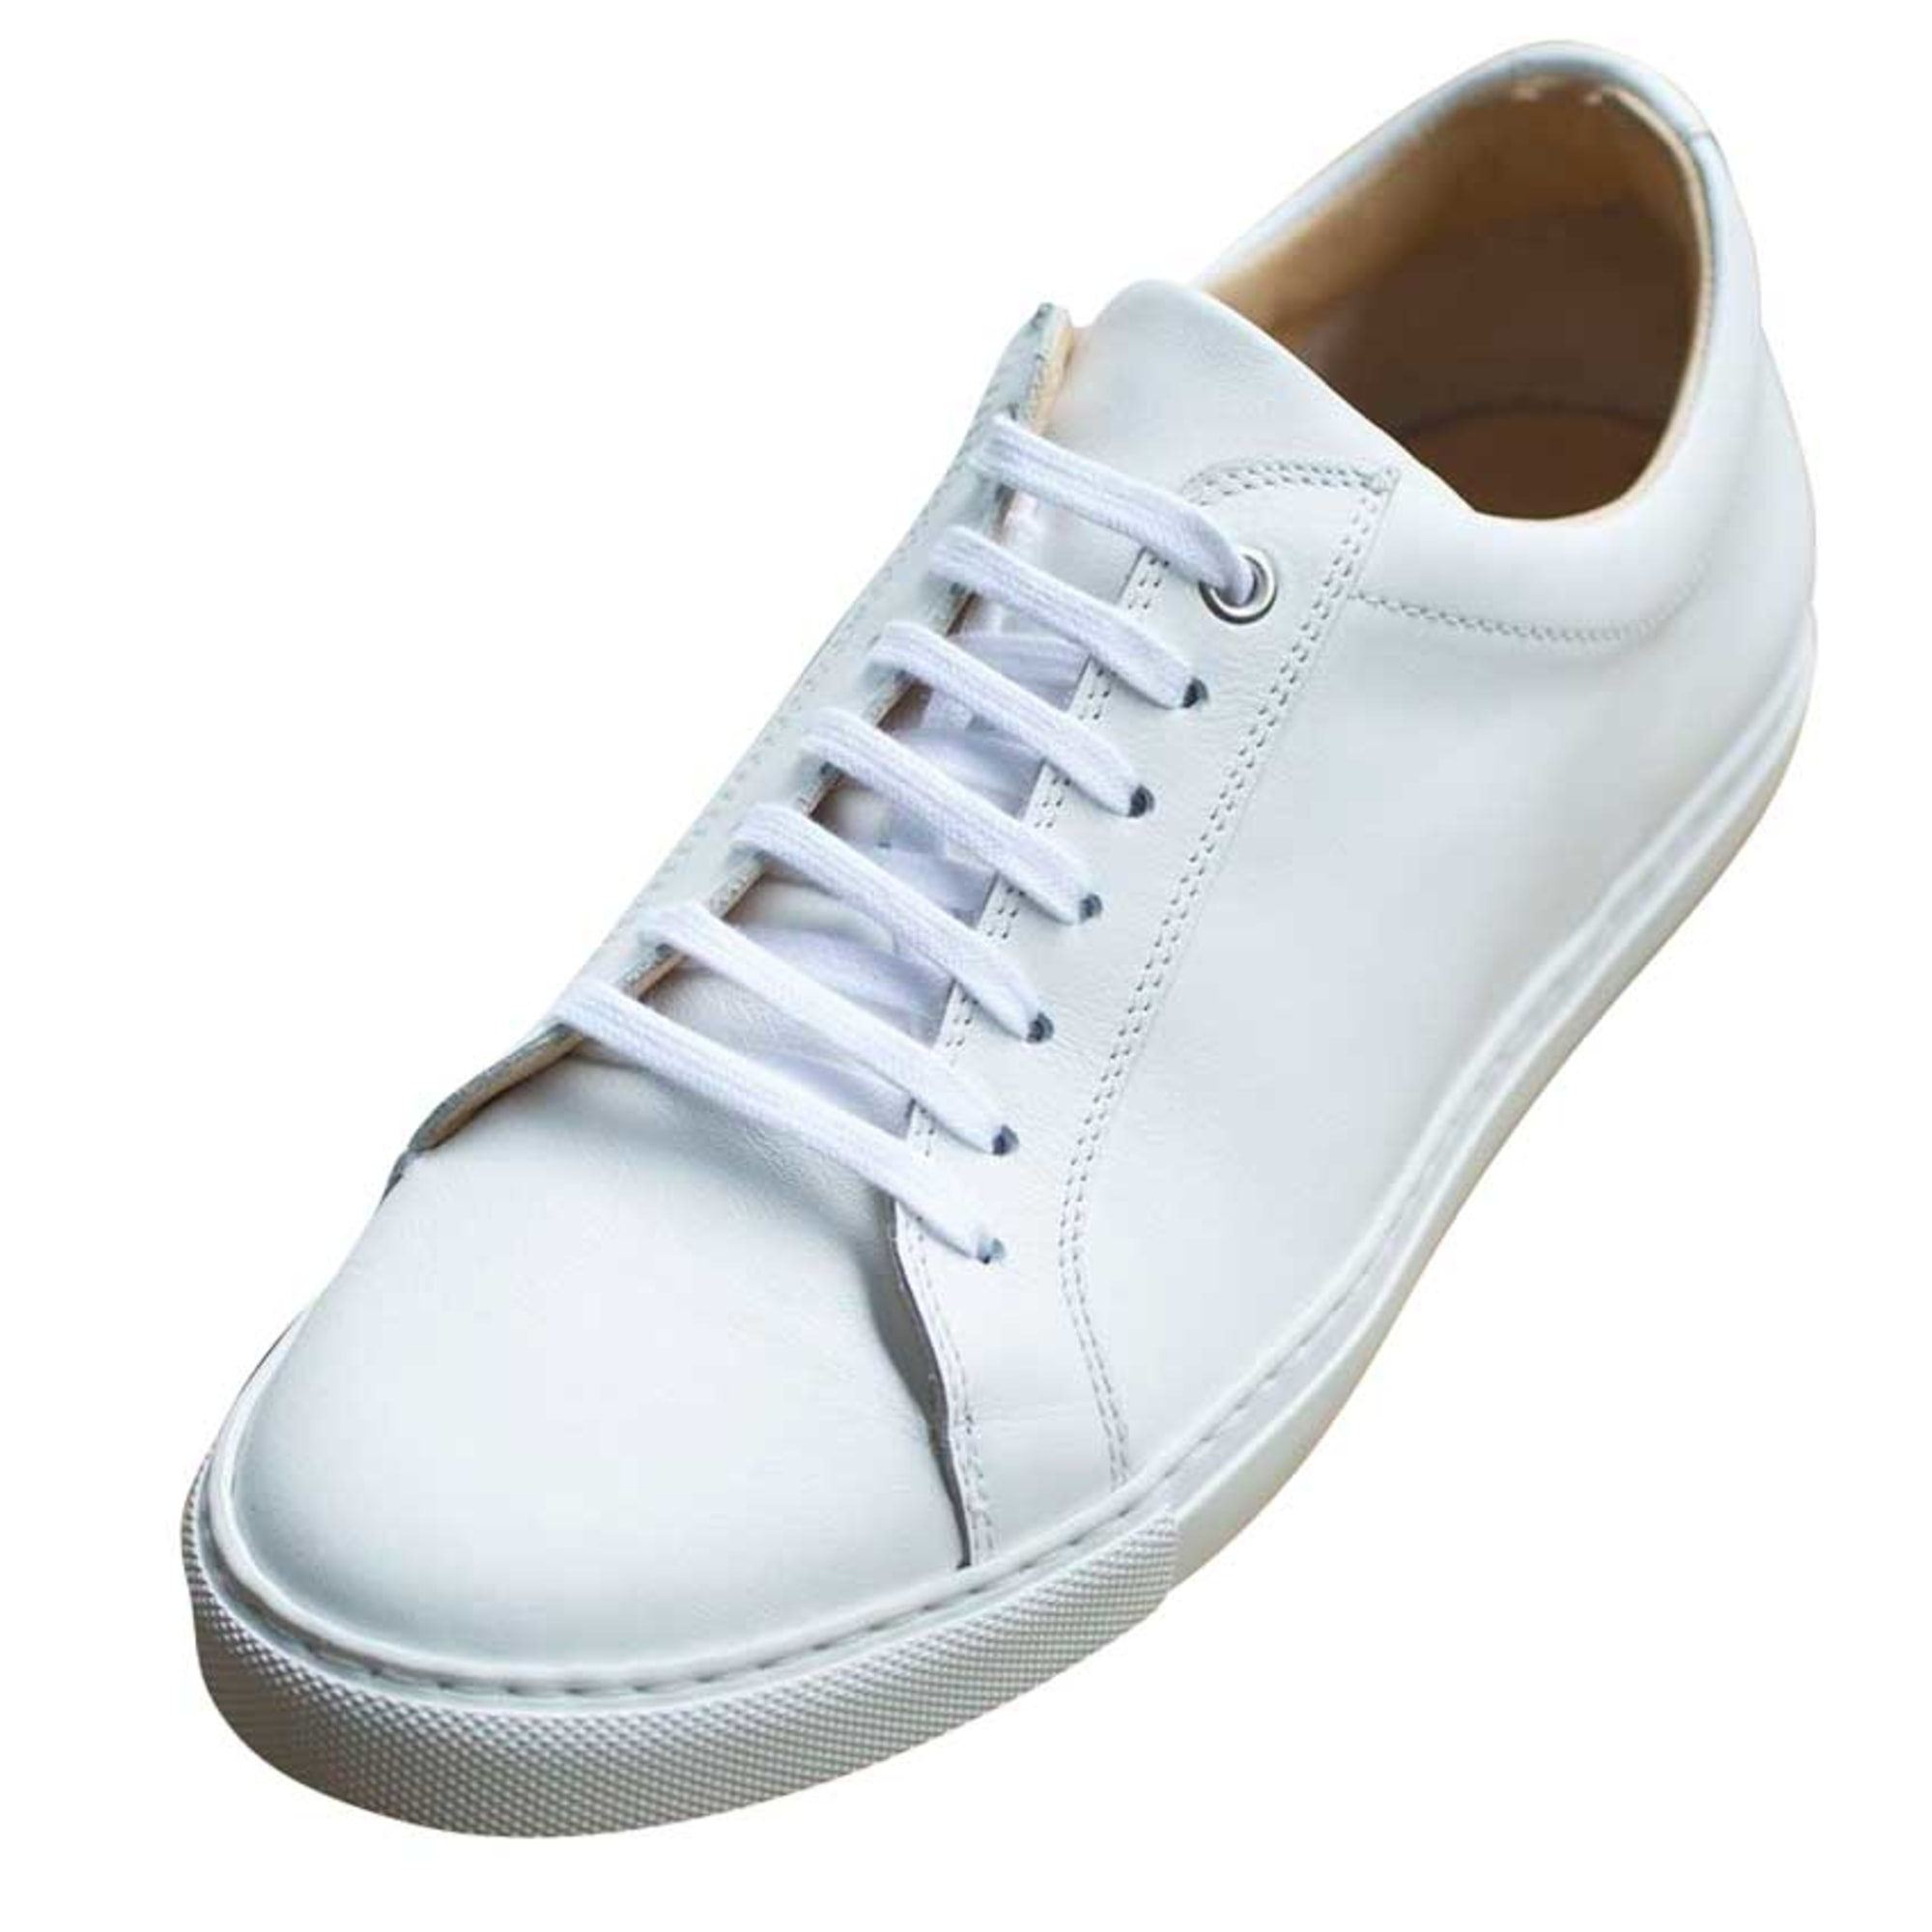 Sneakers SUITSUPPLY White, off-white, ecru